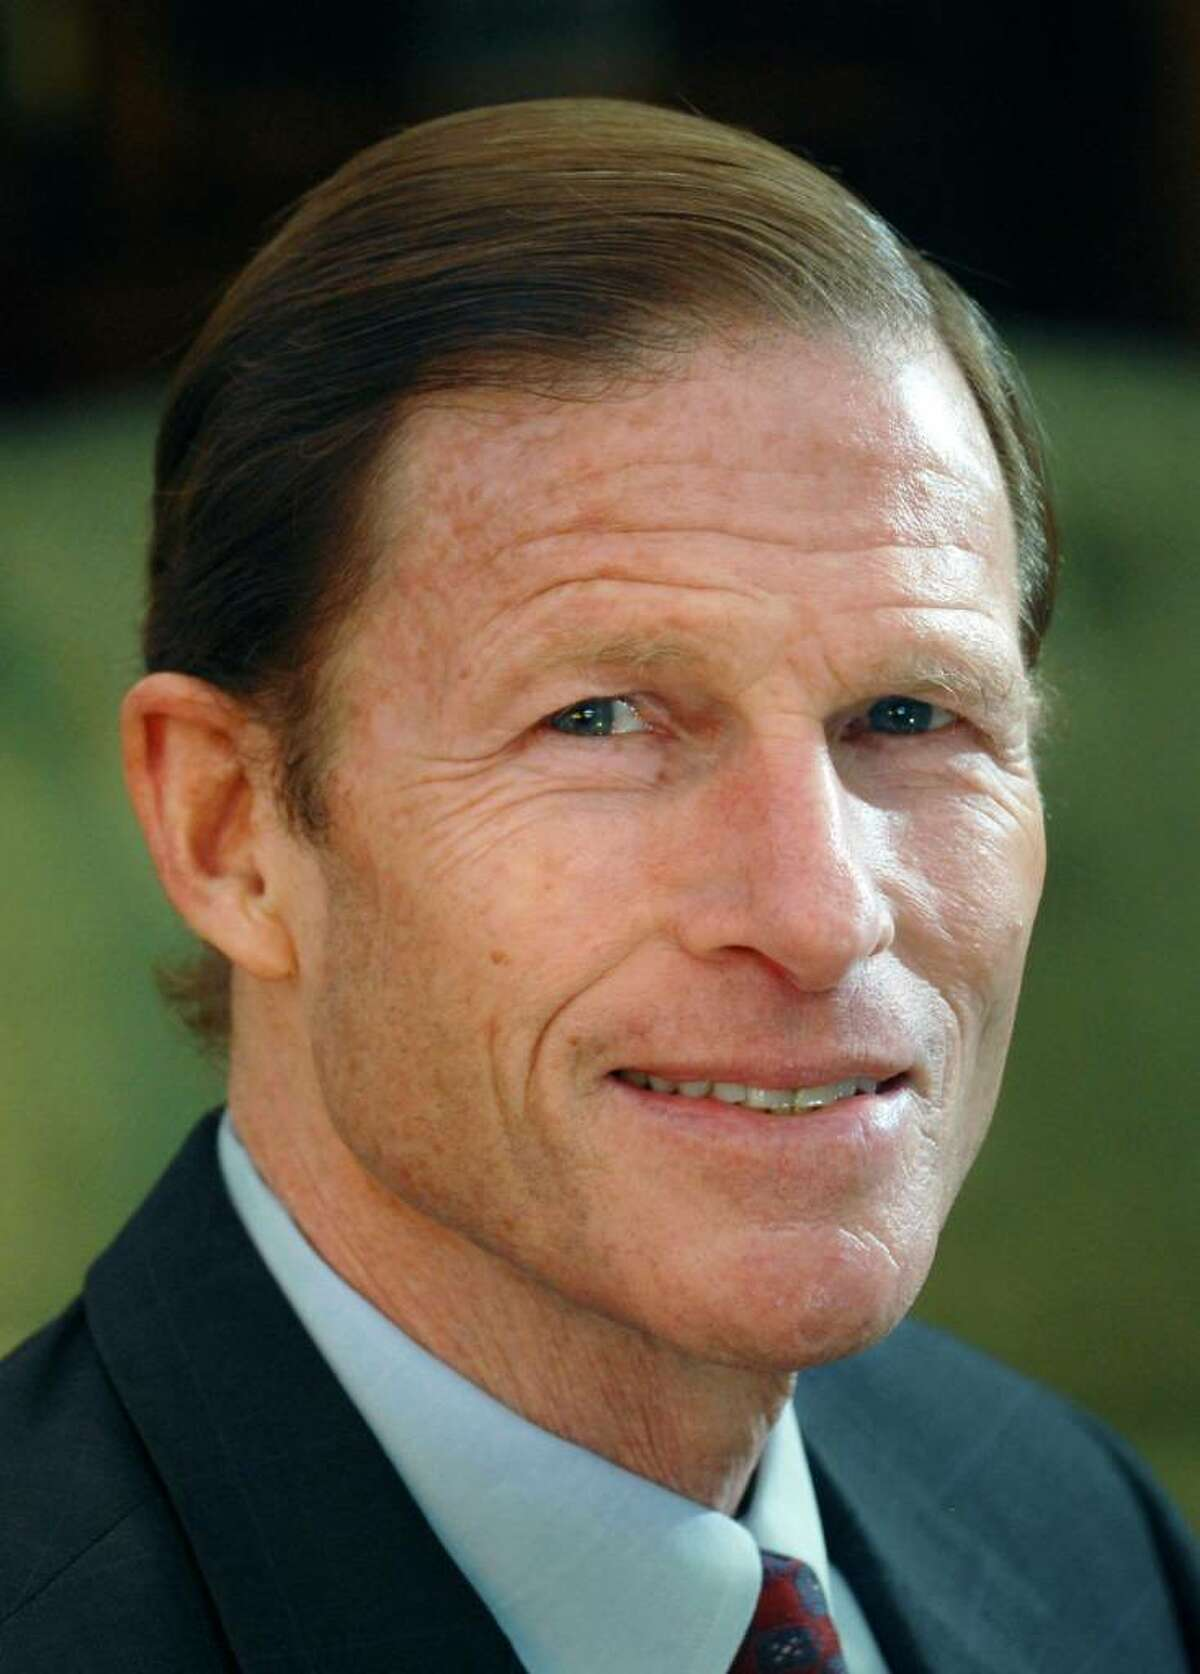 Connecticut Attorney General, Richard Blumenthal, a democrat, is running for the U.S. Senate seat vacated by Christopher Dodd.